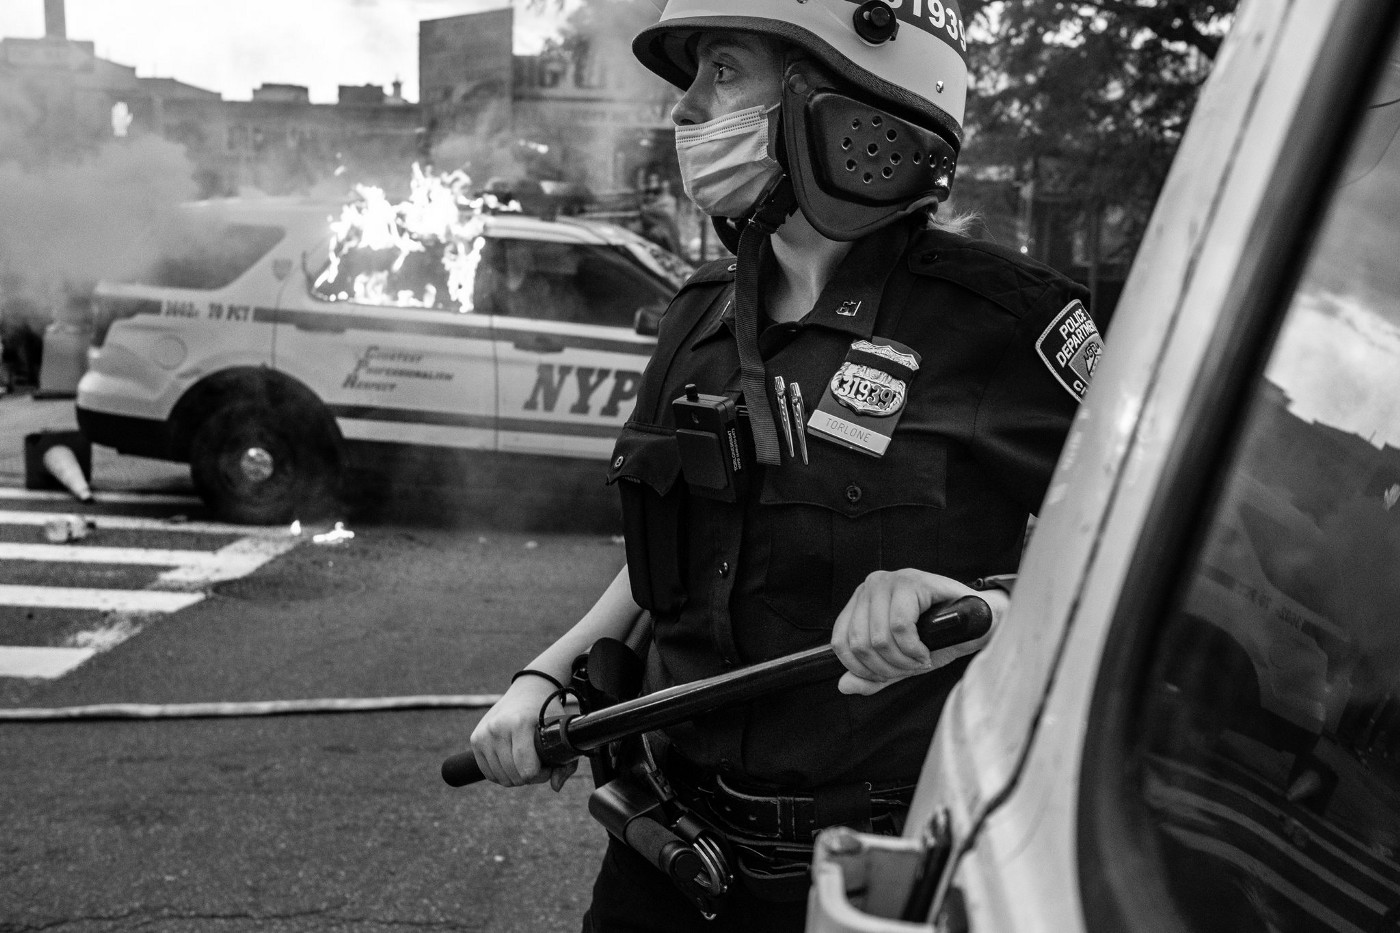 NYPD Officer with nightstick in front of a burning police vehicle.